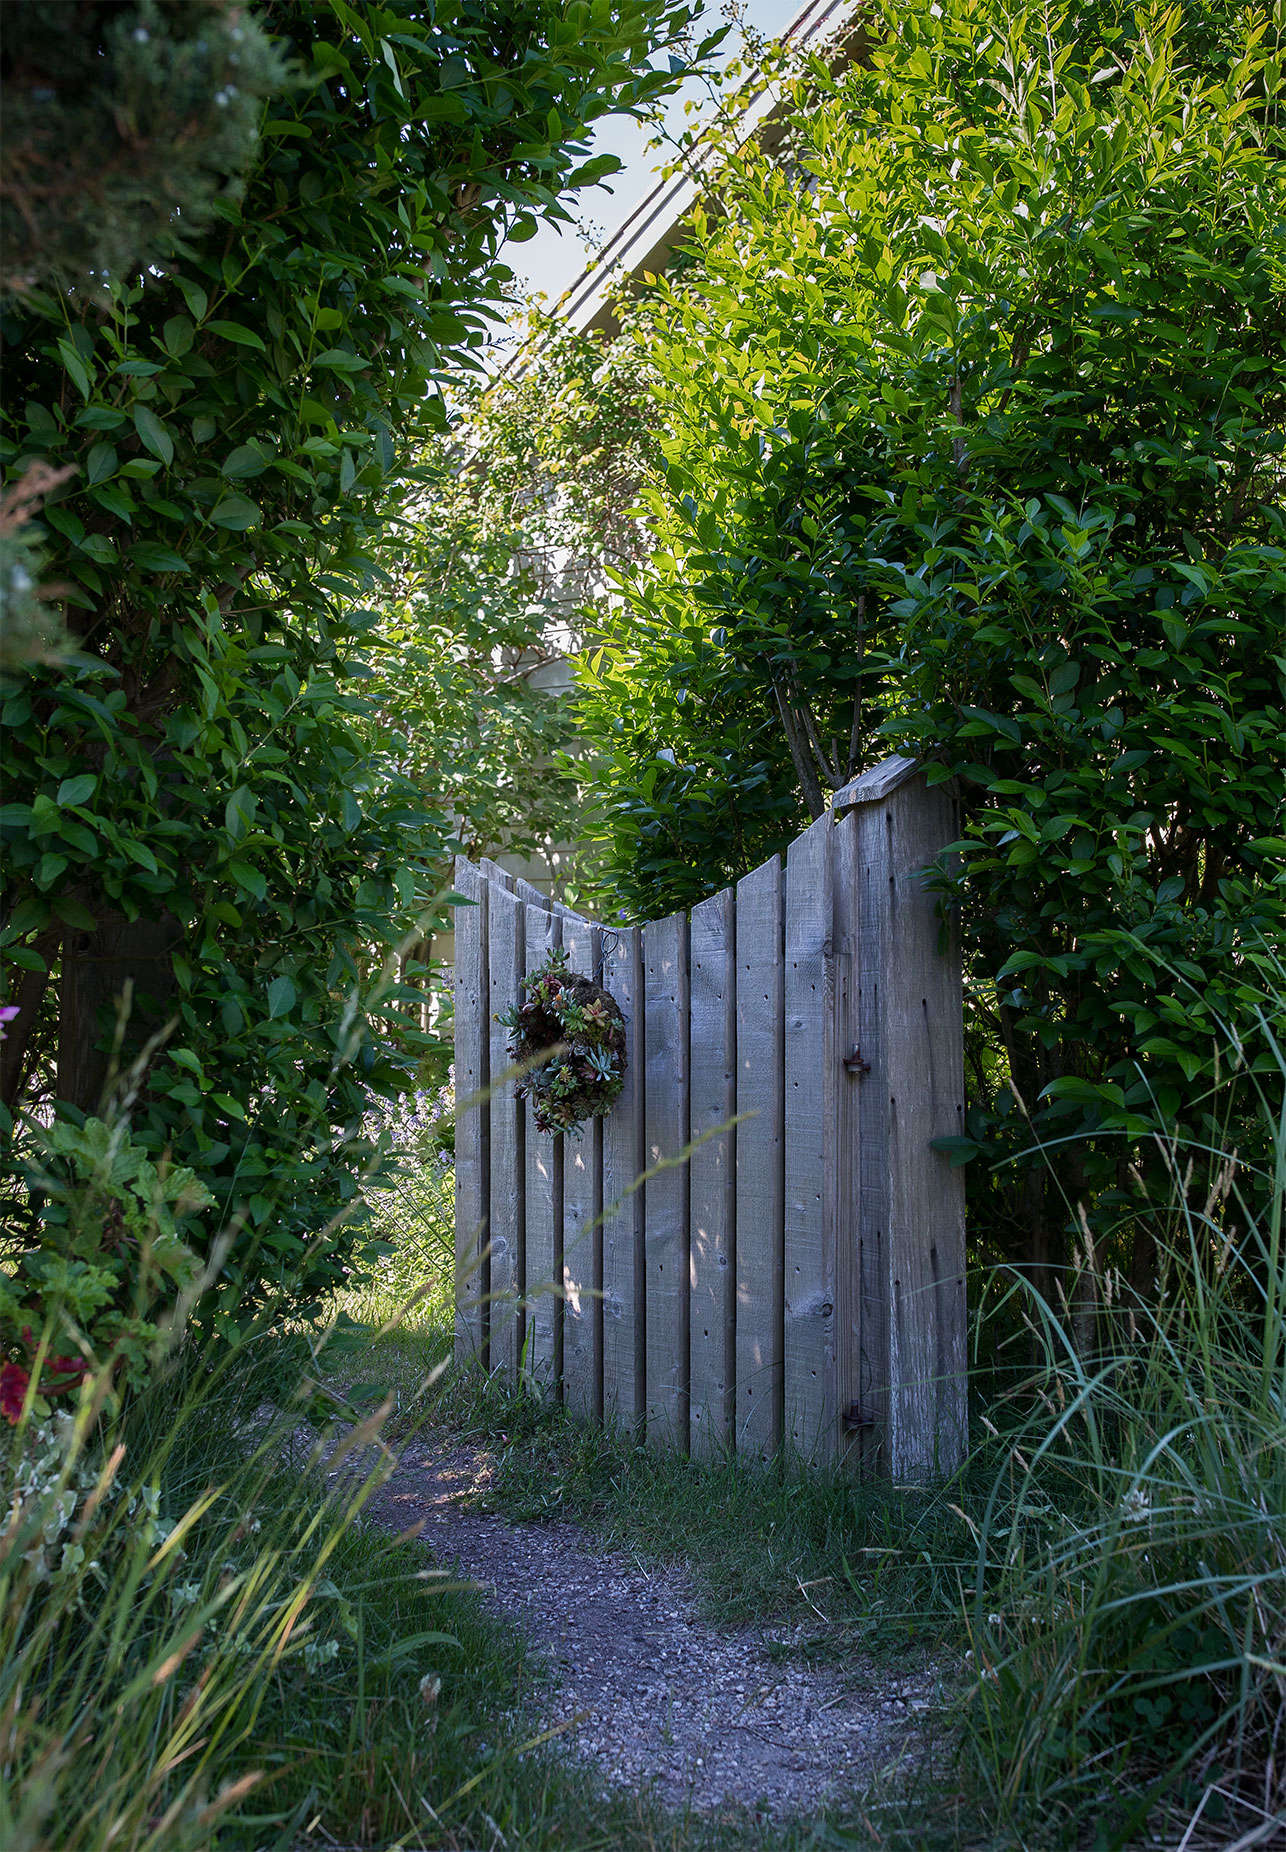 A large privet hedge and garden gate separate the main house from the guest cottage.